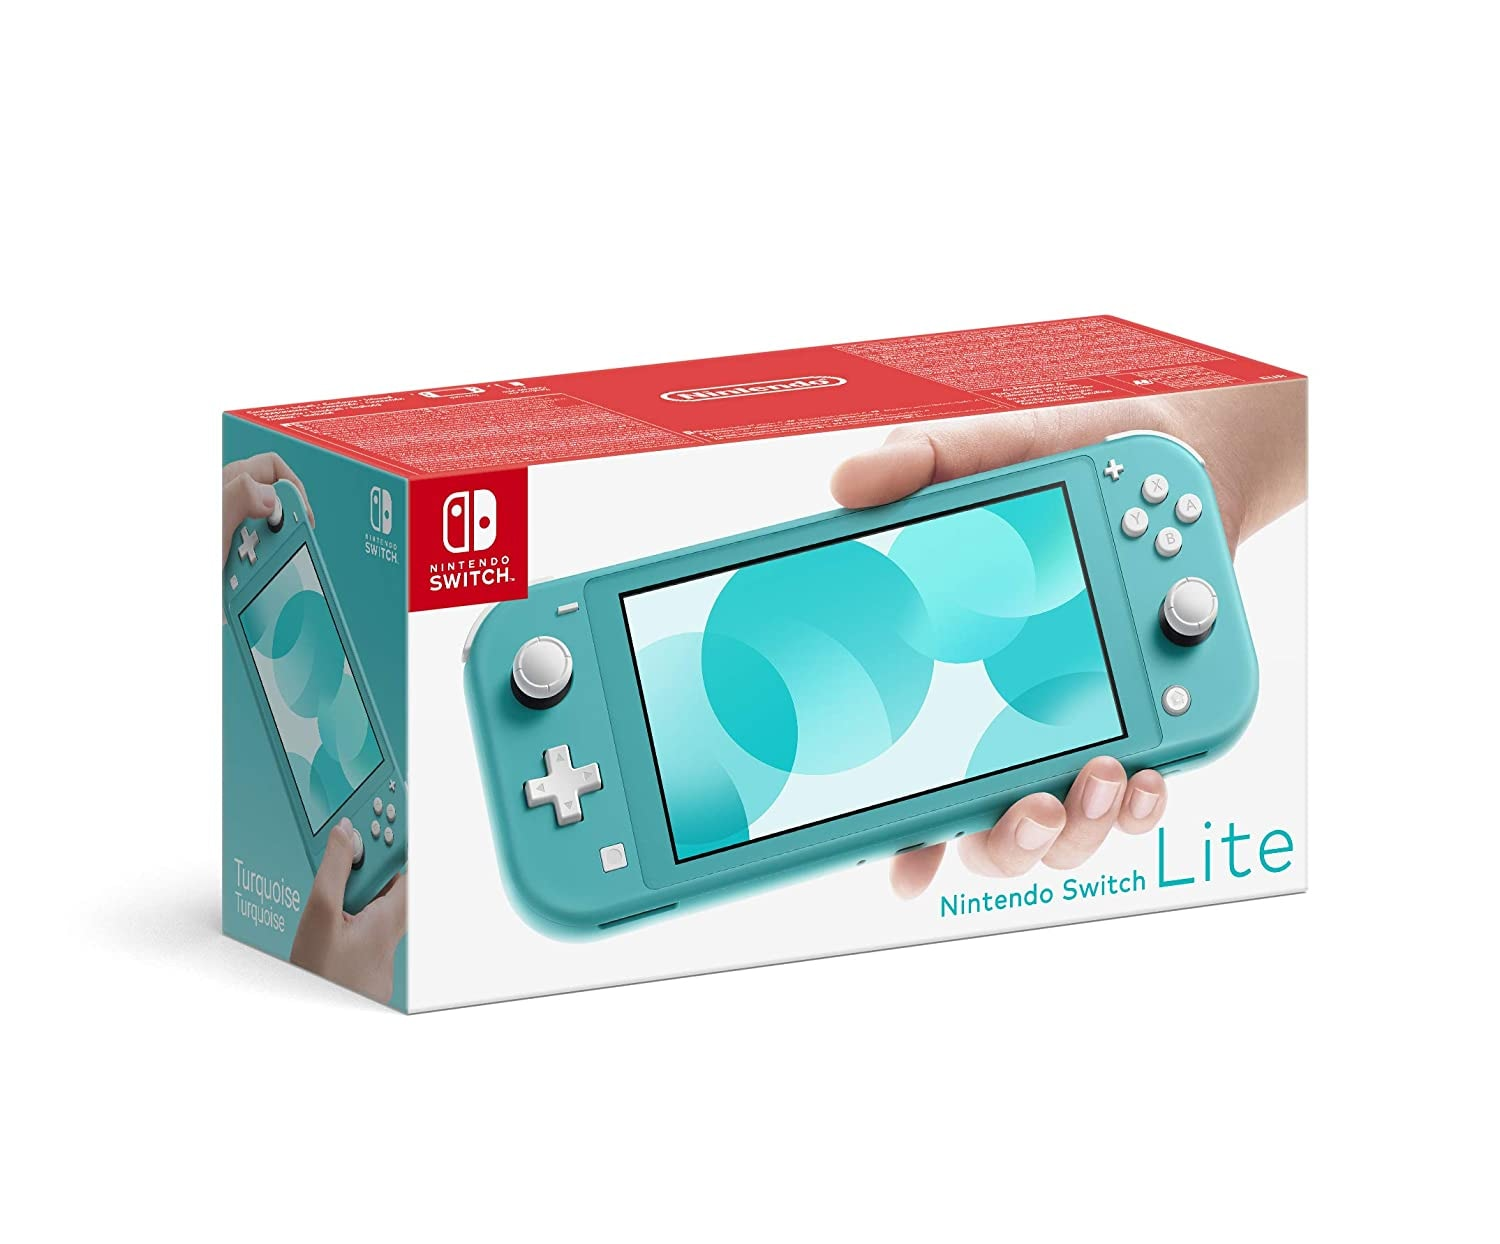 Nintendo Switch Lite 32GB System Handheld Video Game Console Device Tablet AC TESTED WORKING Light Blue - 1